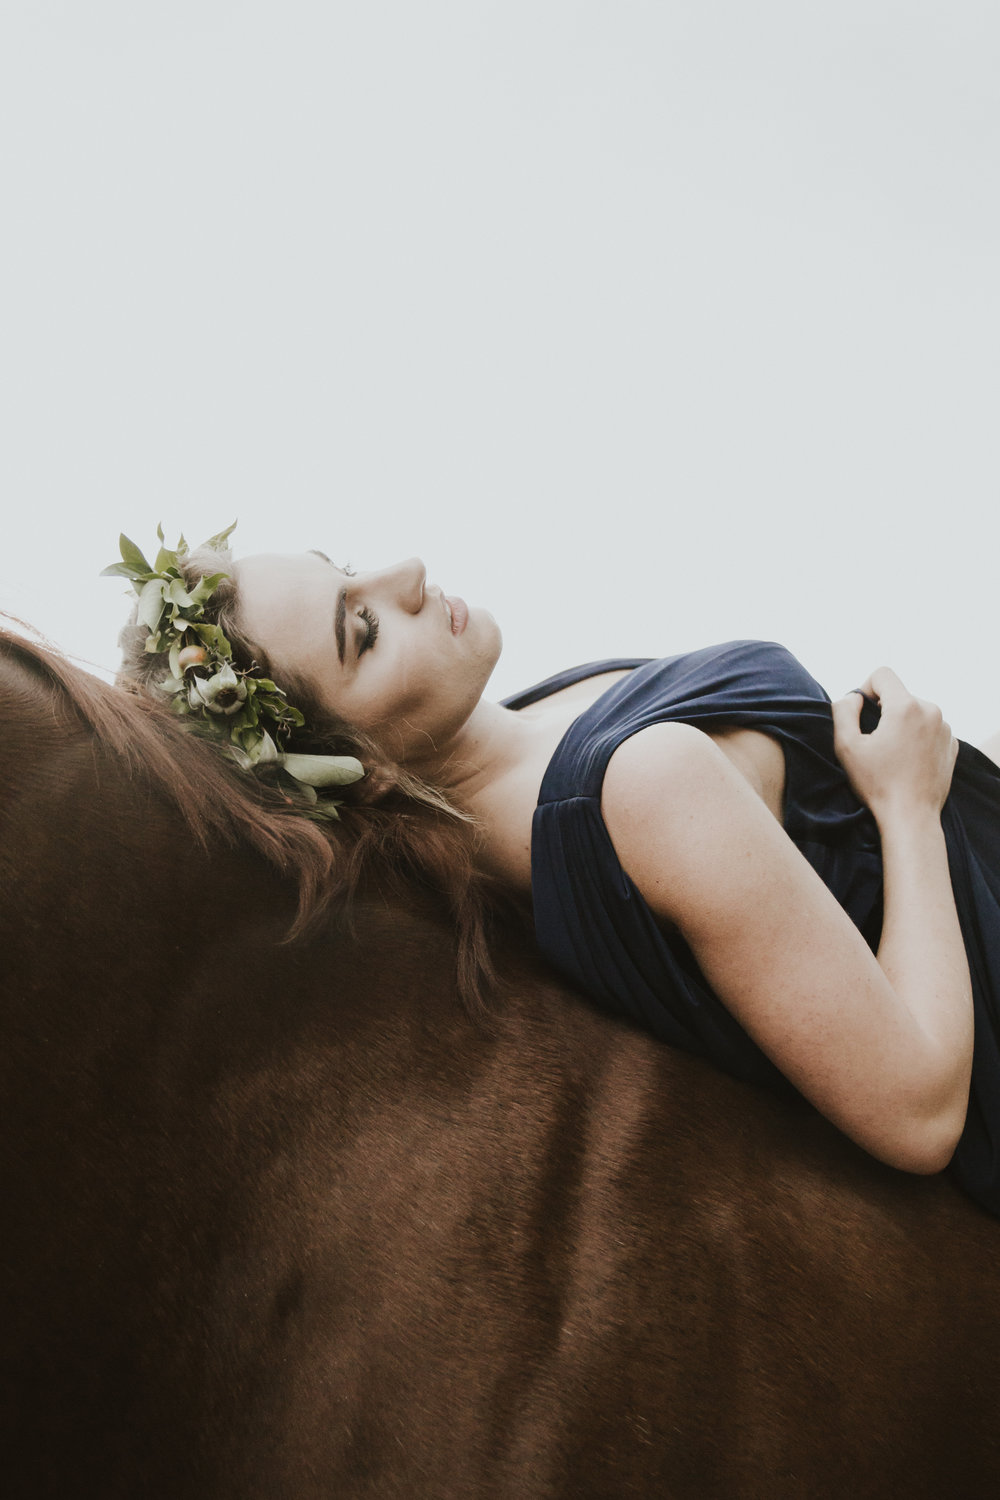 Girl on horse editorial portraits